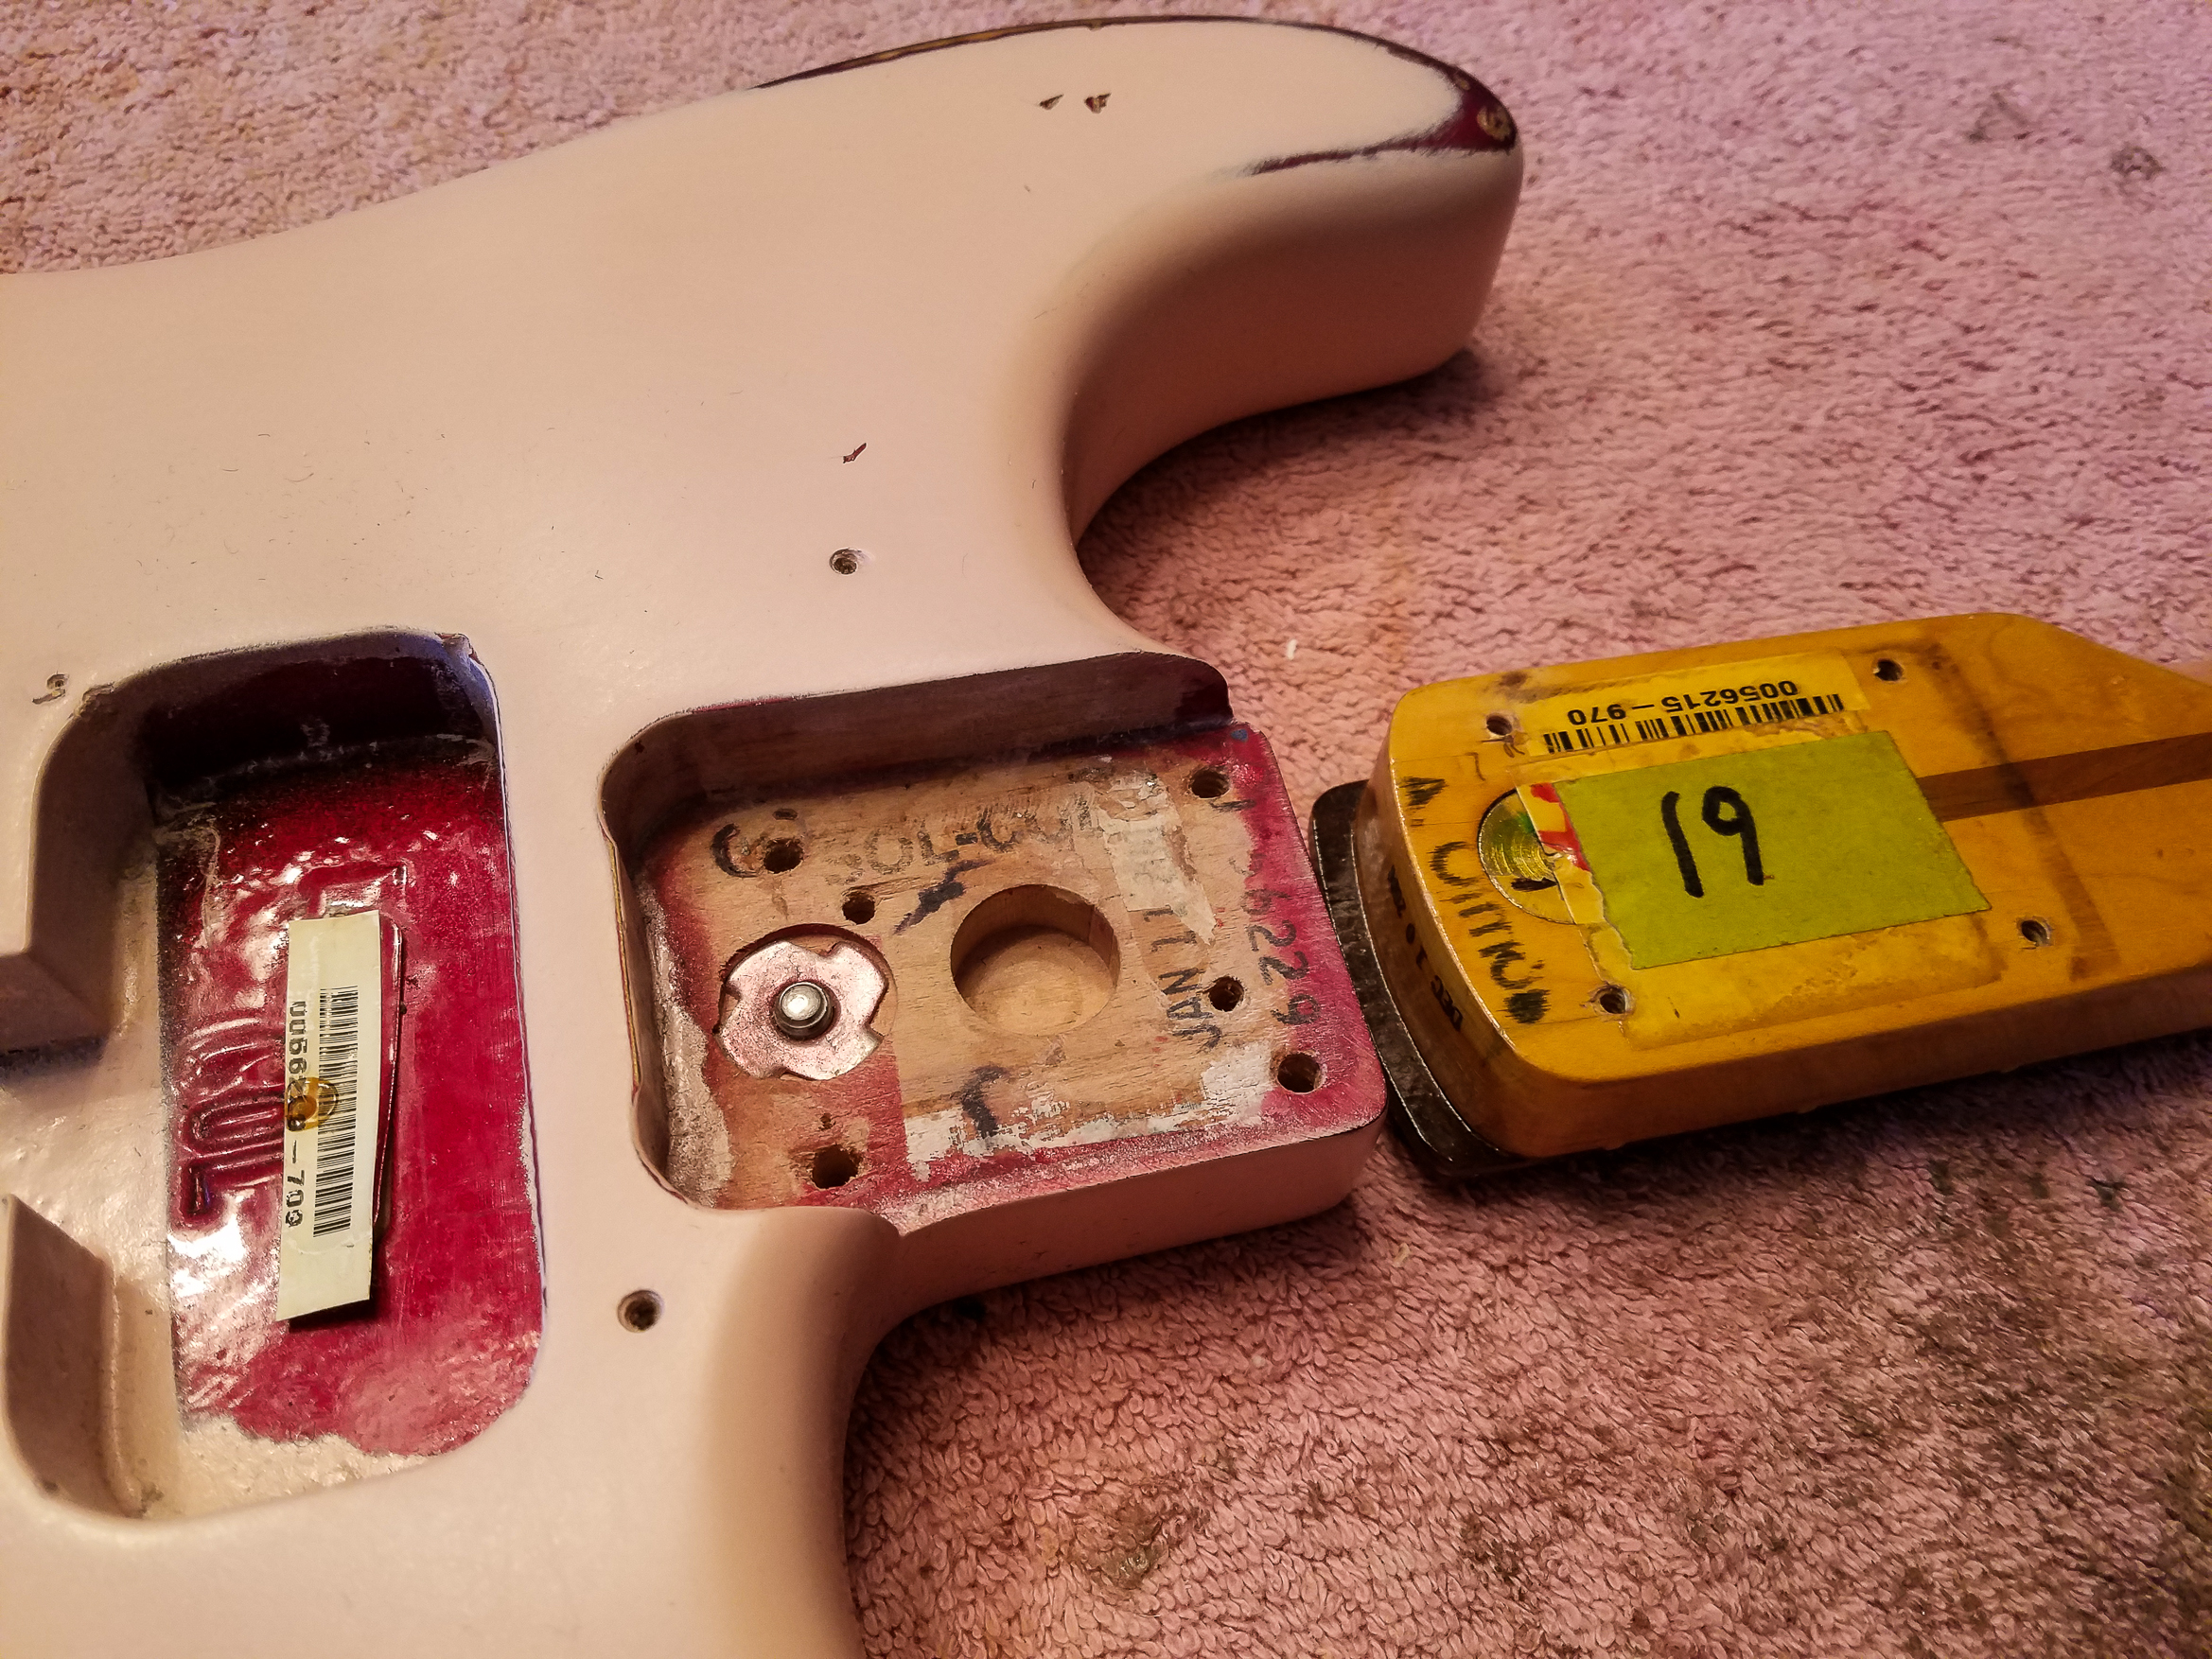 Fender Stratocaster Shell Pink Relic Neck Body Pocket  Guitarwacky.com